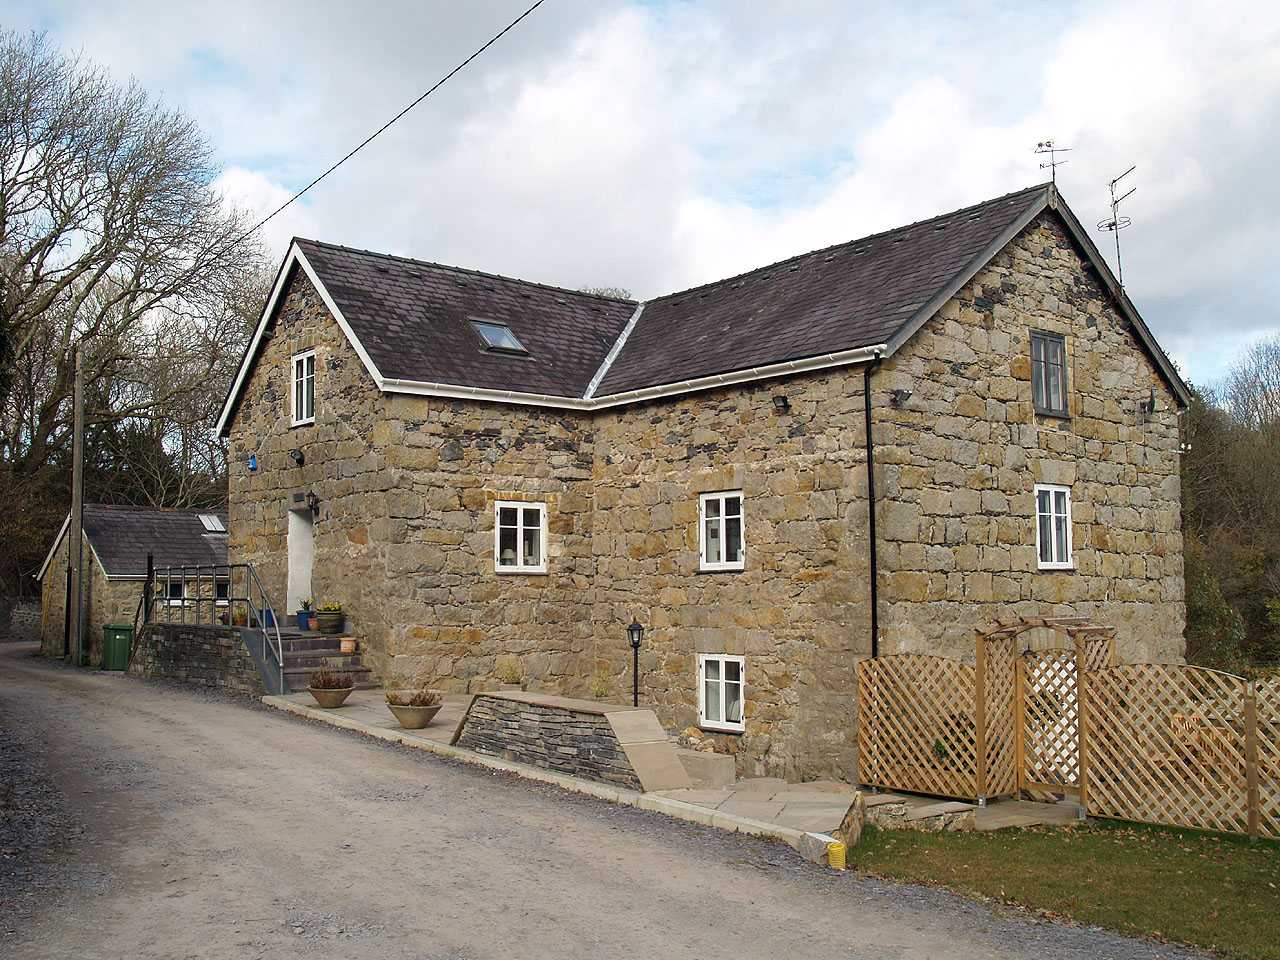 Llanfair Pwllgwyngyll, Pwll Fanogl Water Mill - what is now the front entrance